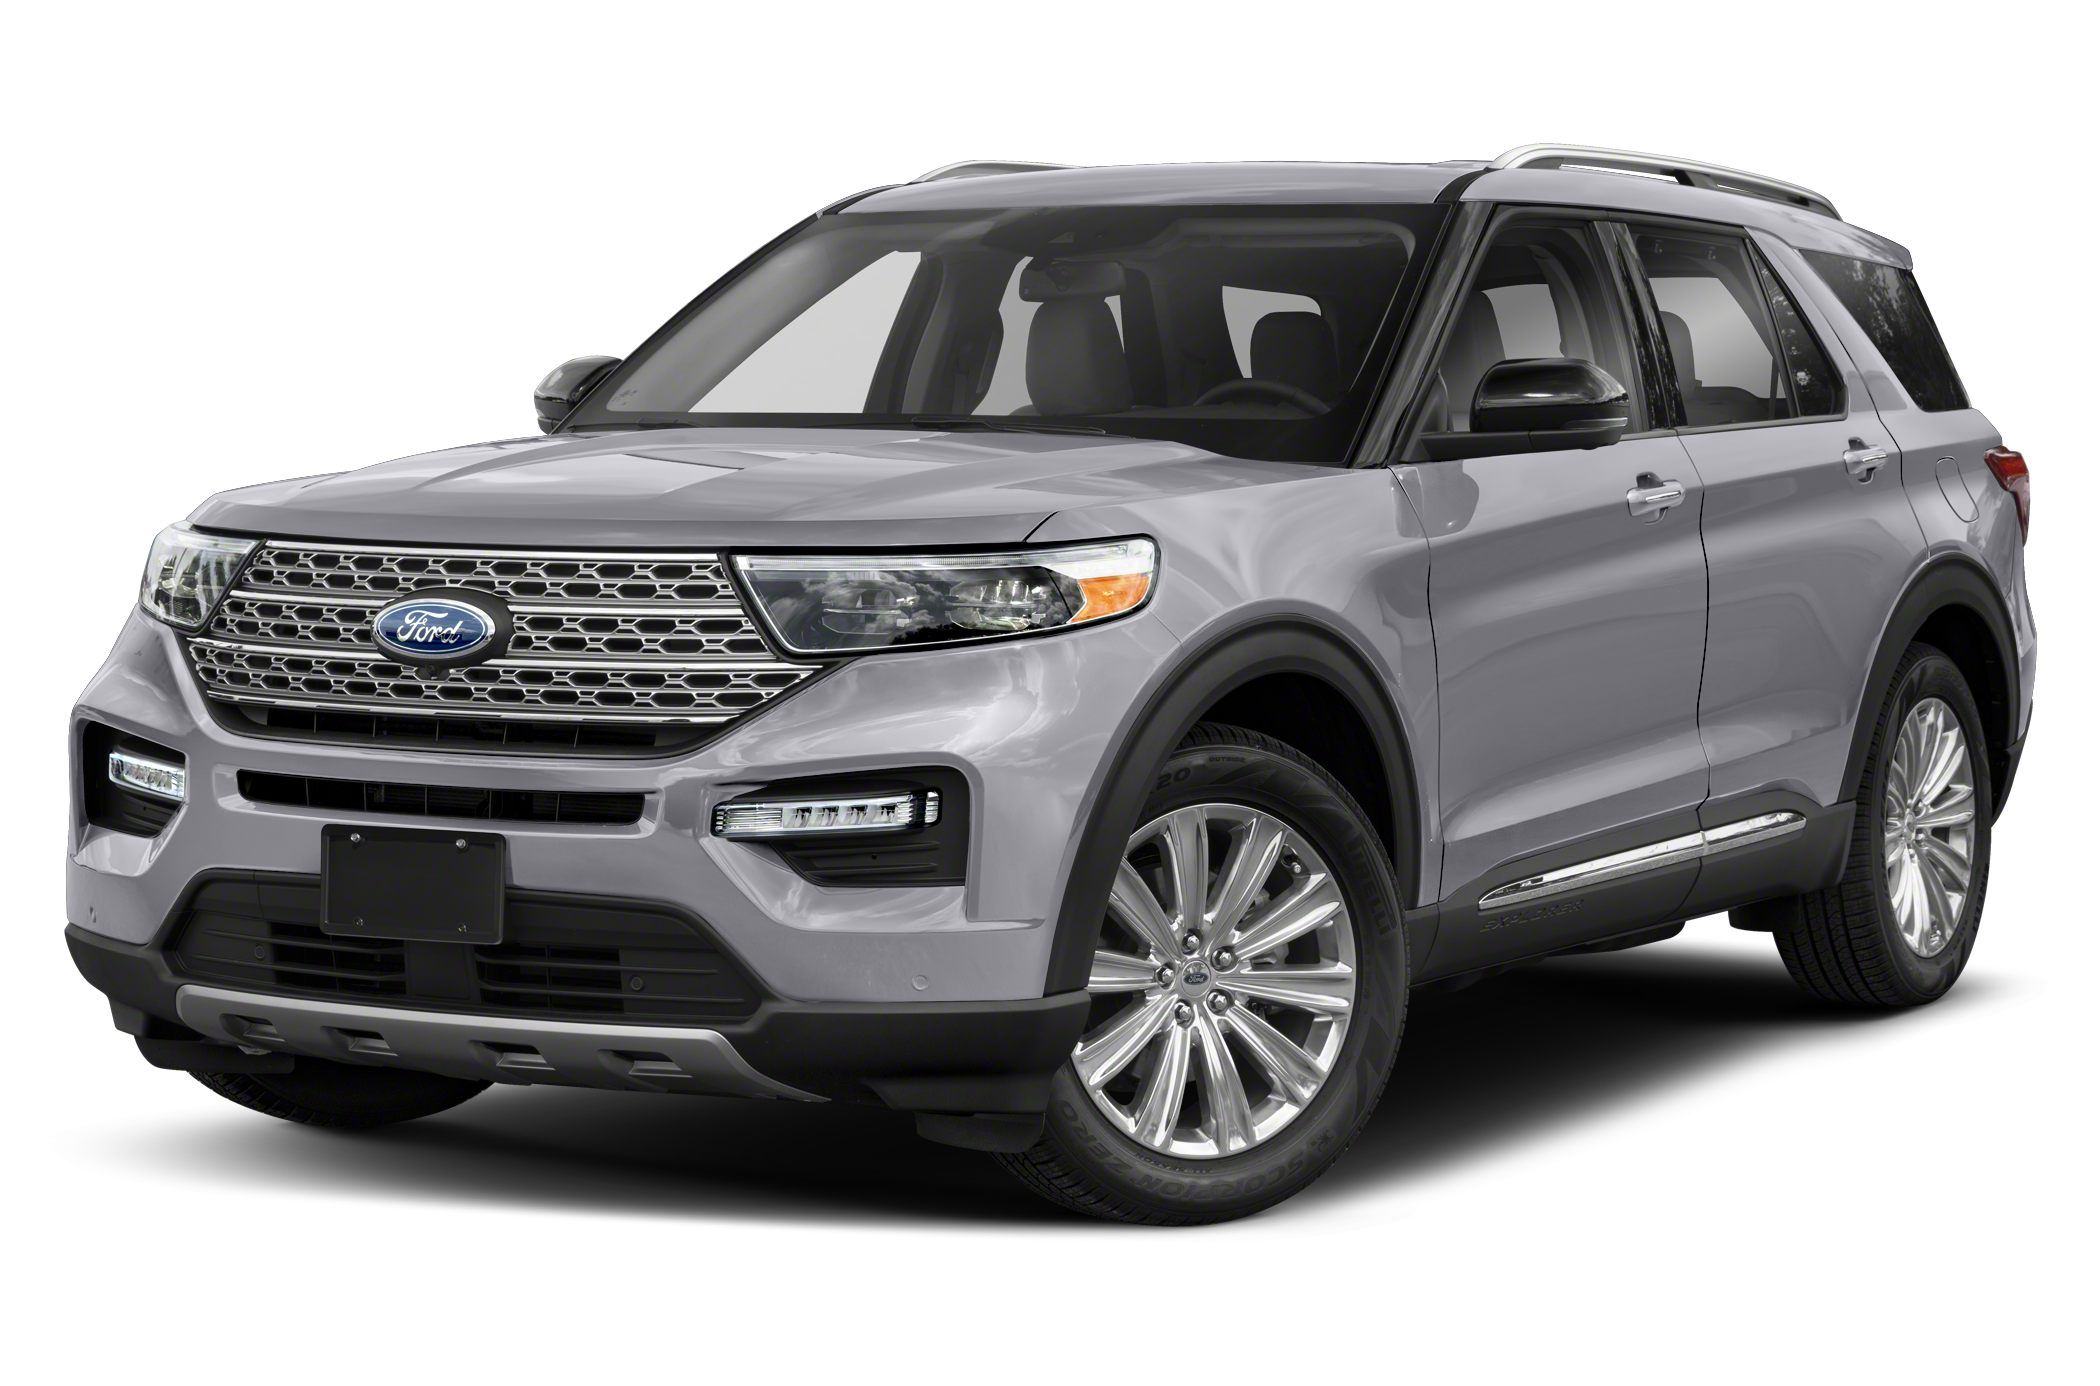 2021 Ford Explorer Hybrid Towing Capacity New Cars Review Ford Explorer Ford Explorer Hybrid Ford Suv